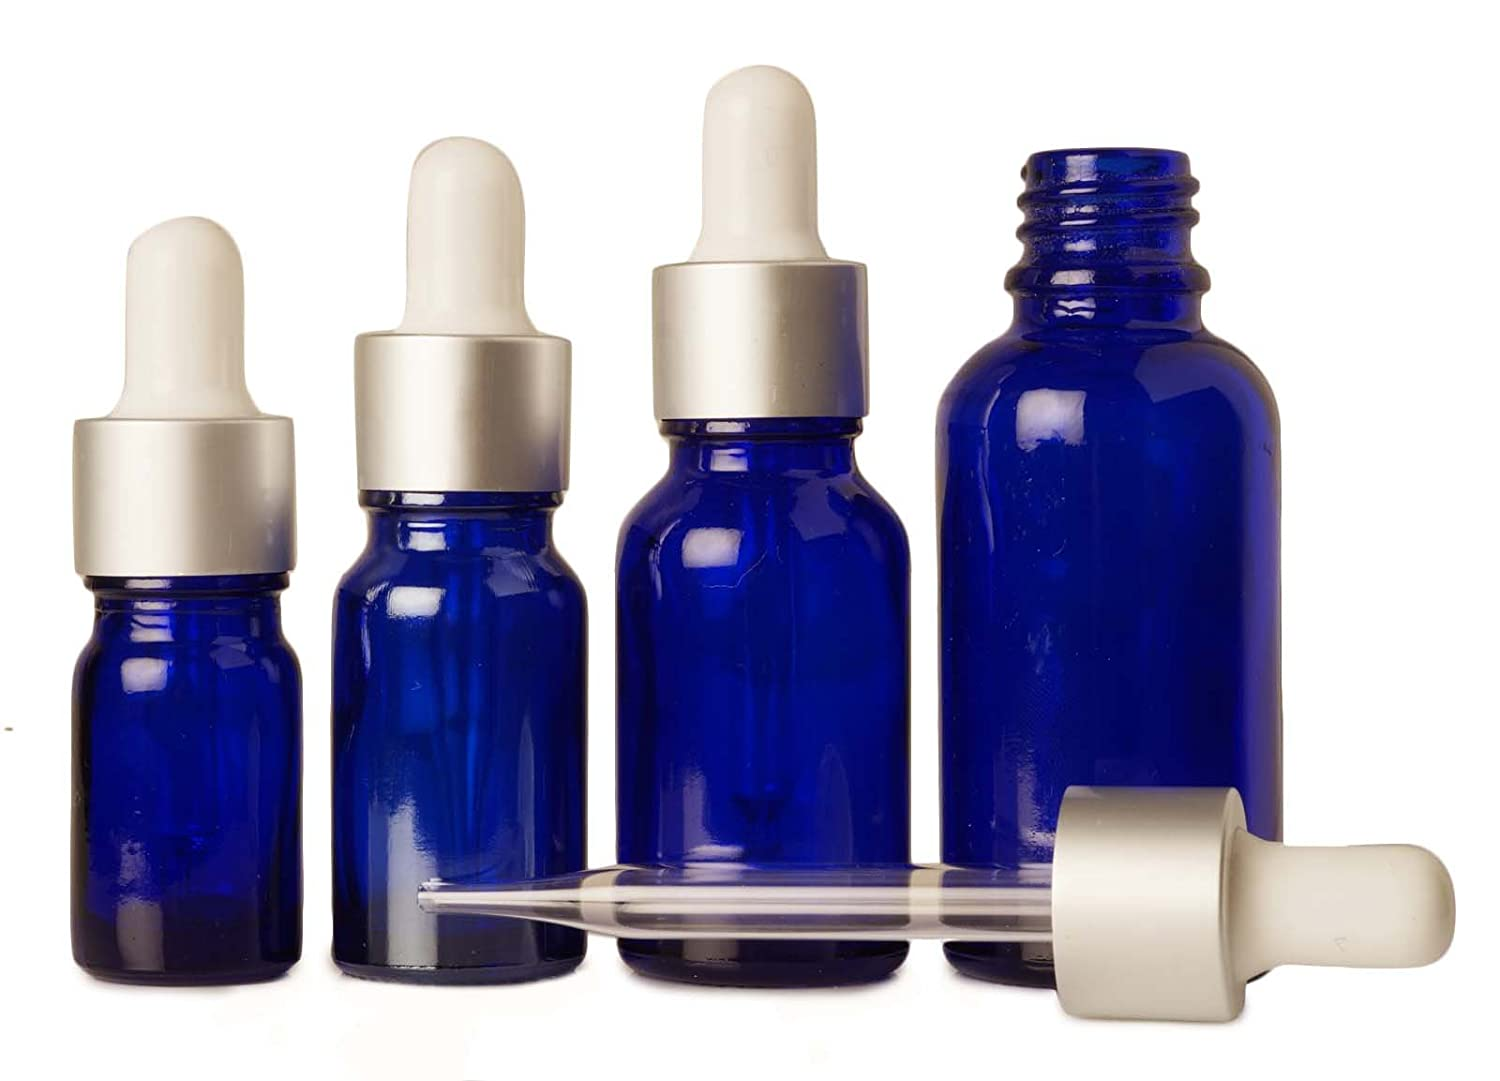 12 Piece Empty Cobalt Blue Glass Eye Dropper Bottle Boston Round Wholesale Serum Bottles Aromatherapy Oils Refillable Pipette Drop Vials 15 ml MT Bottles & Jars